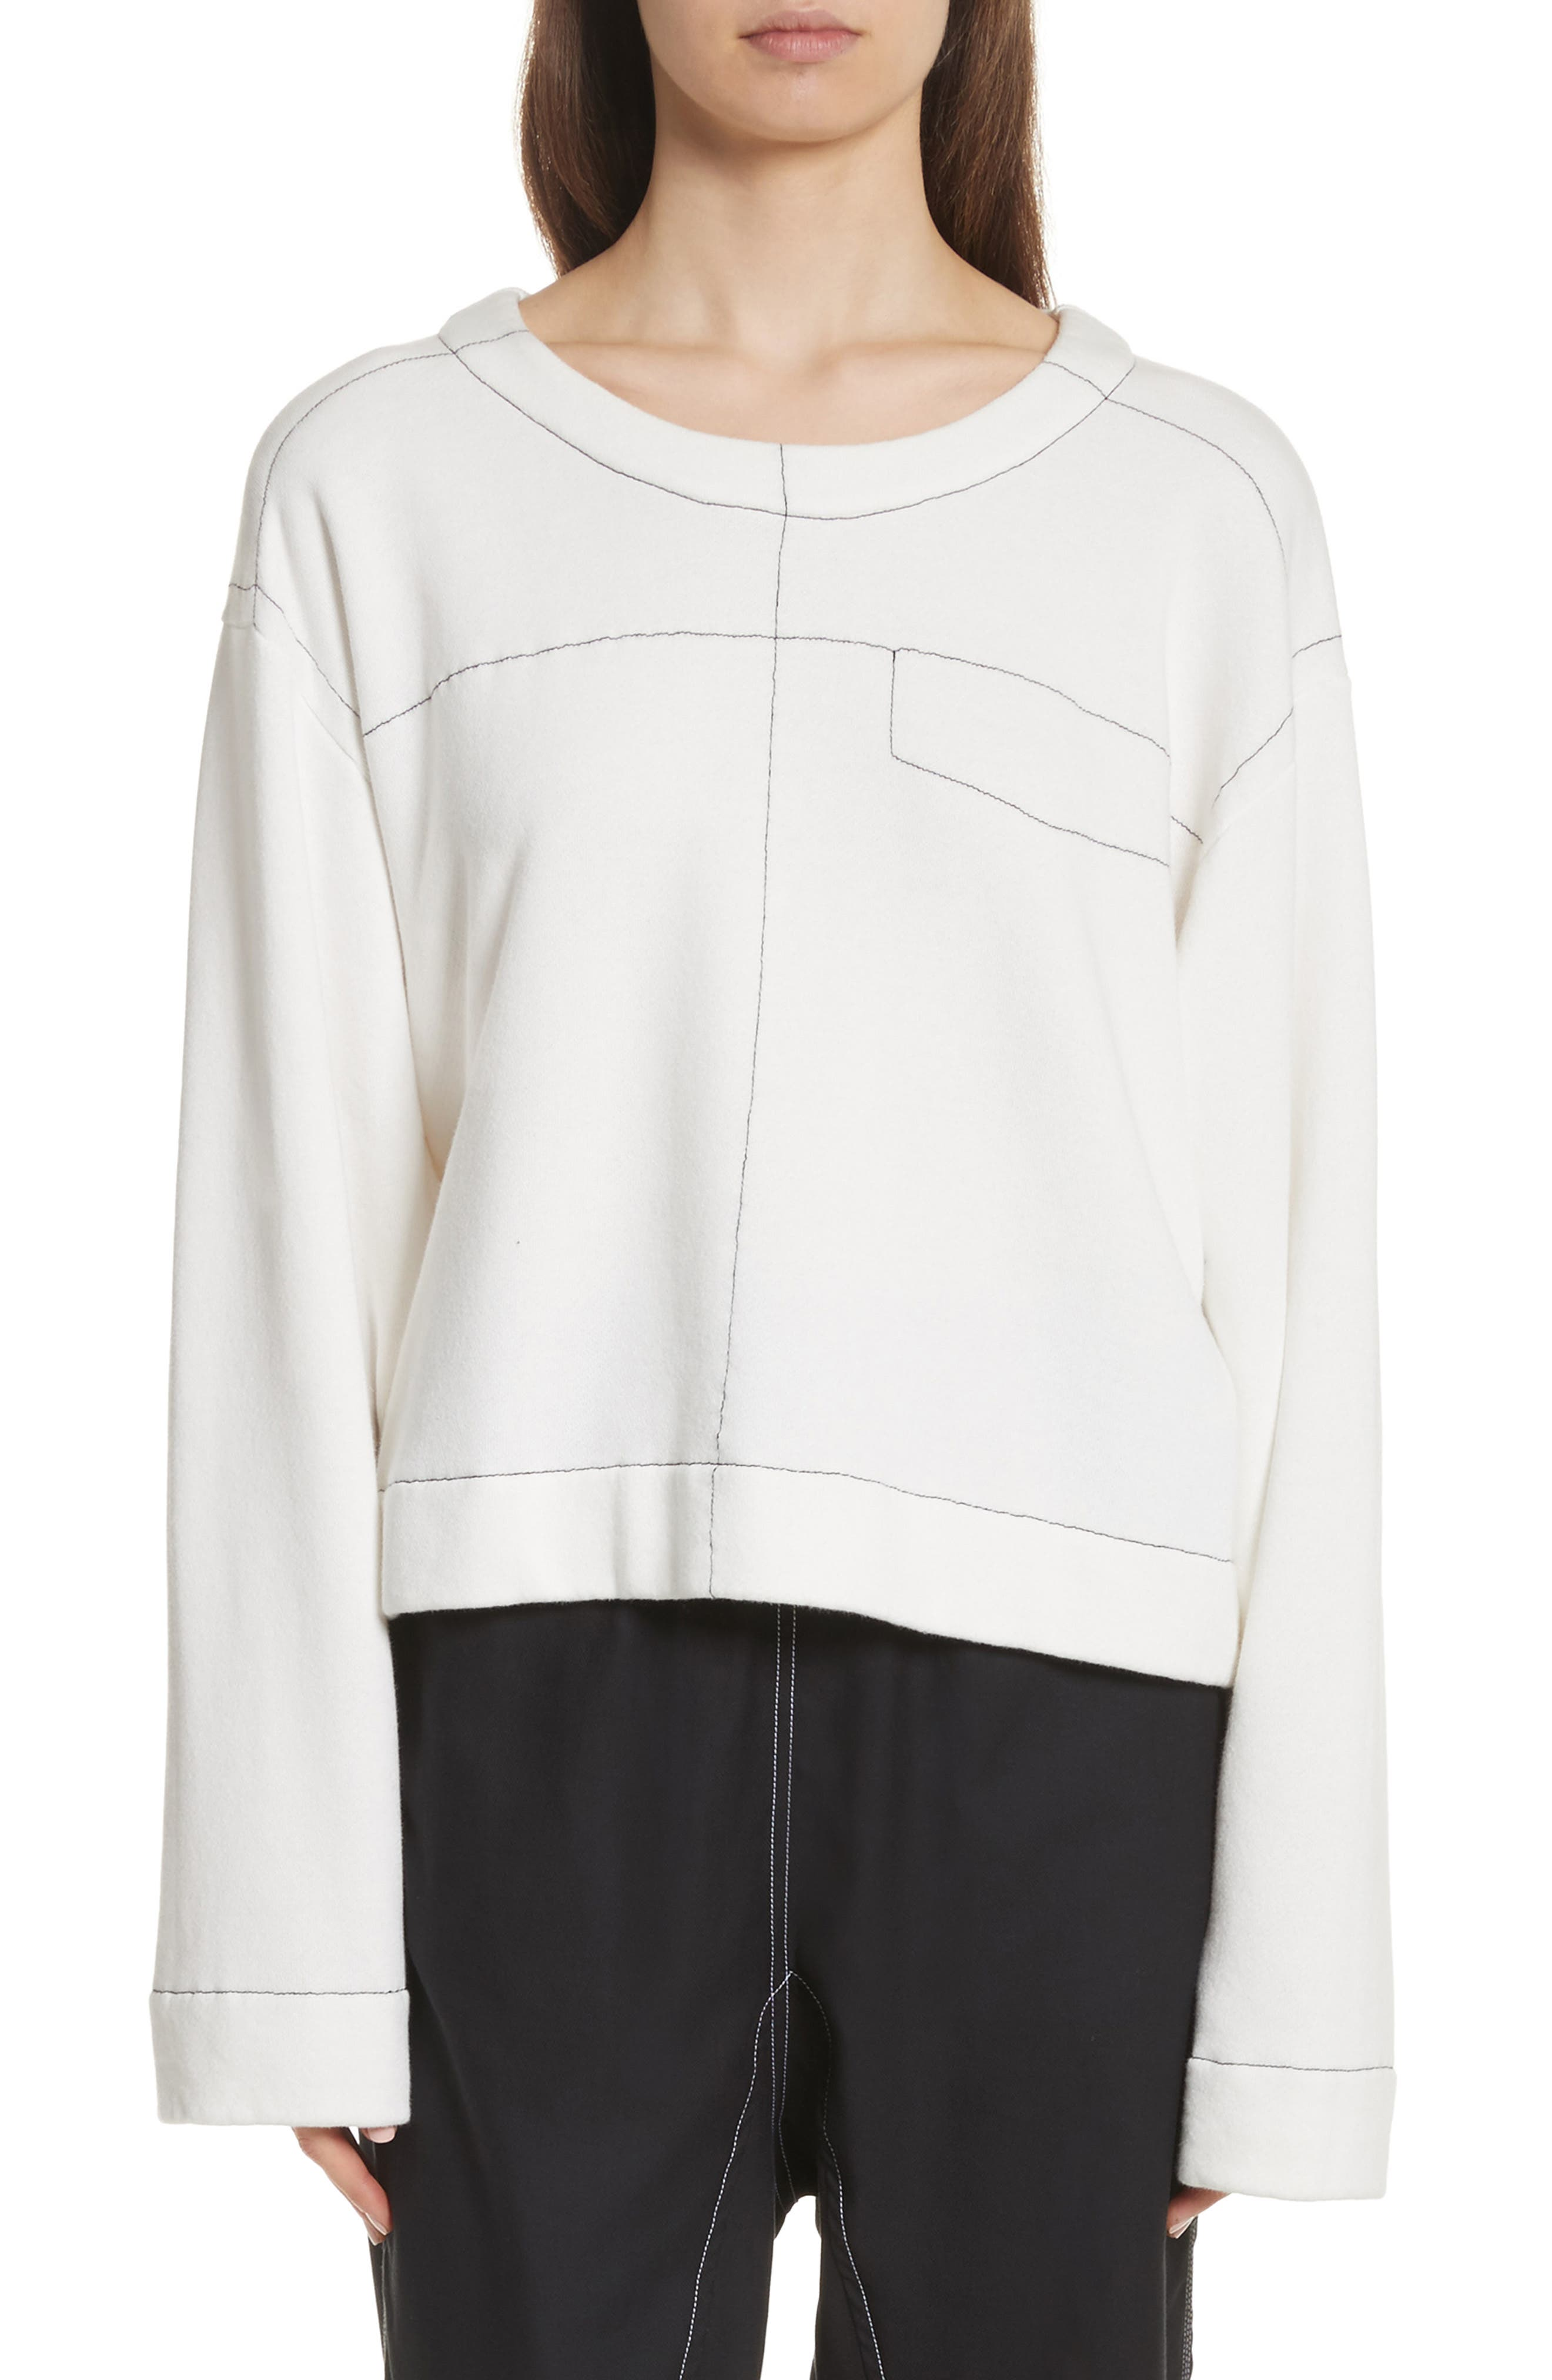 Topstitch Sweater,                         Main,                         color, Off White